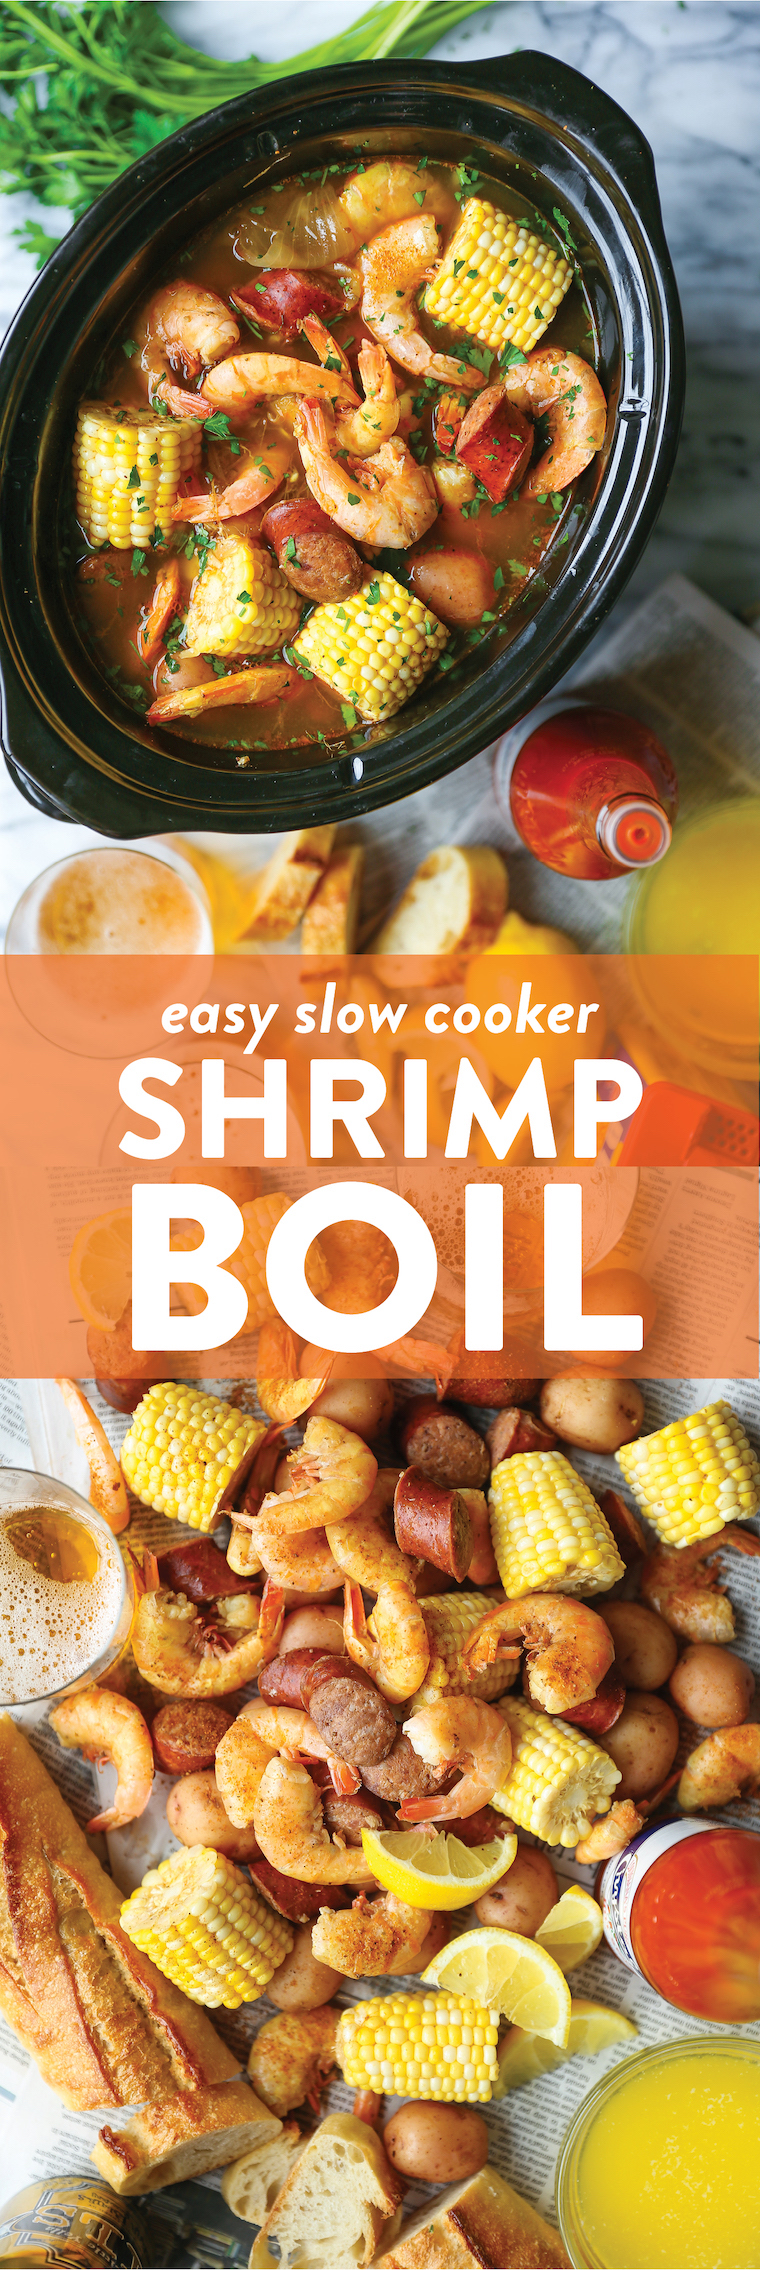 Slow Cooker Shrimp Boil - Red potatoes, andouille sausage, shrimp, corn, Old Bay. A classic shrimp boil made without any of the fuss right in your crockpot!